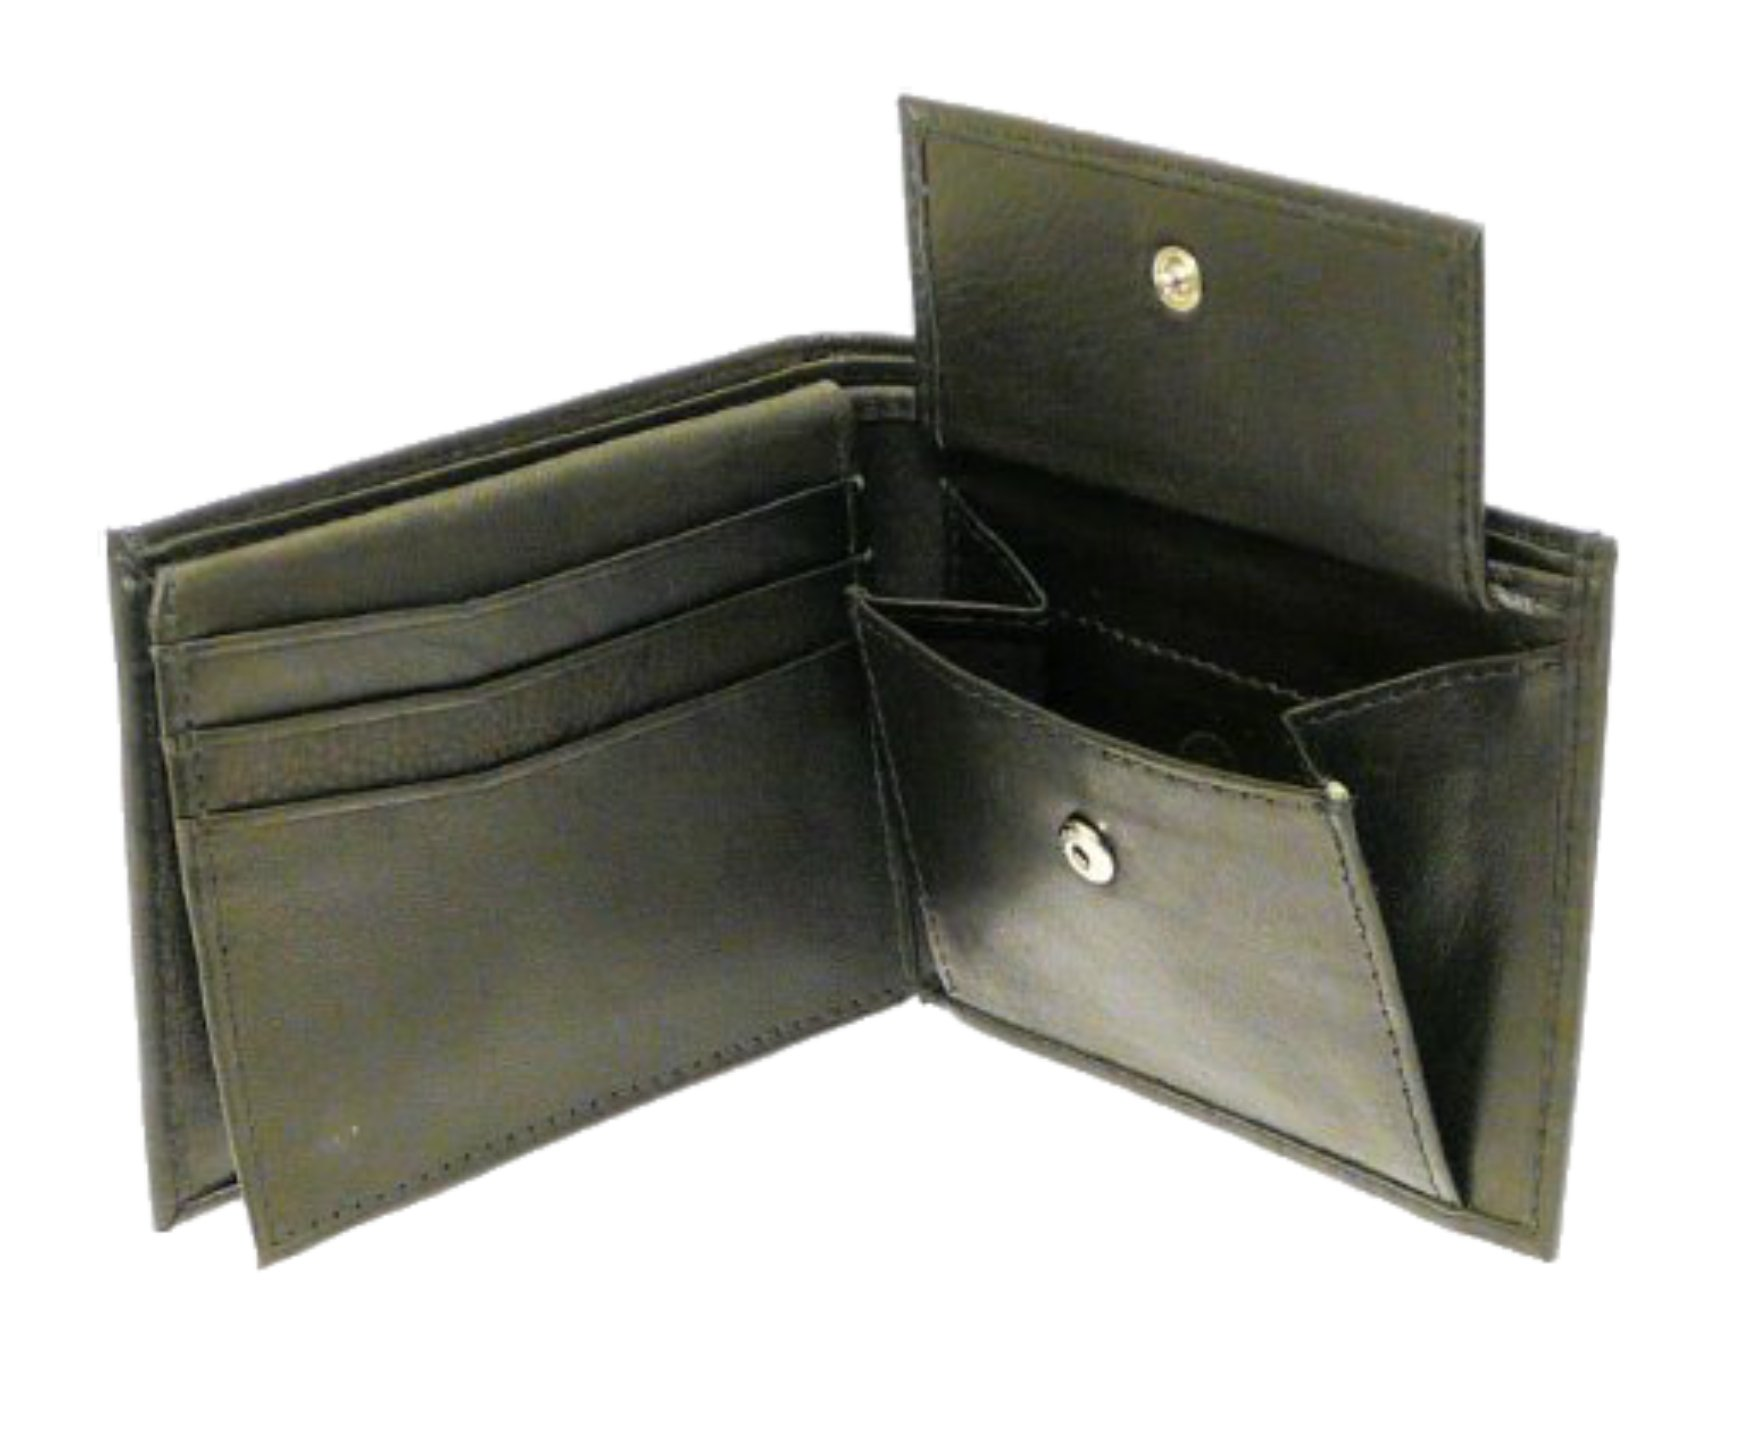 Black Leather Wallet 6 Credit Cards 1 ID Card Coins Notes